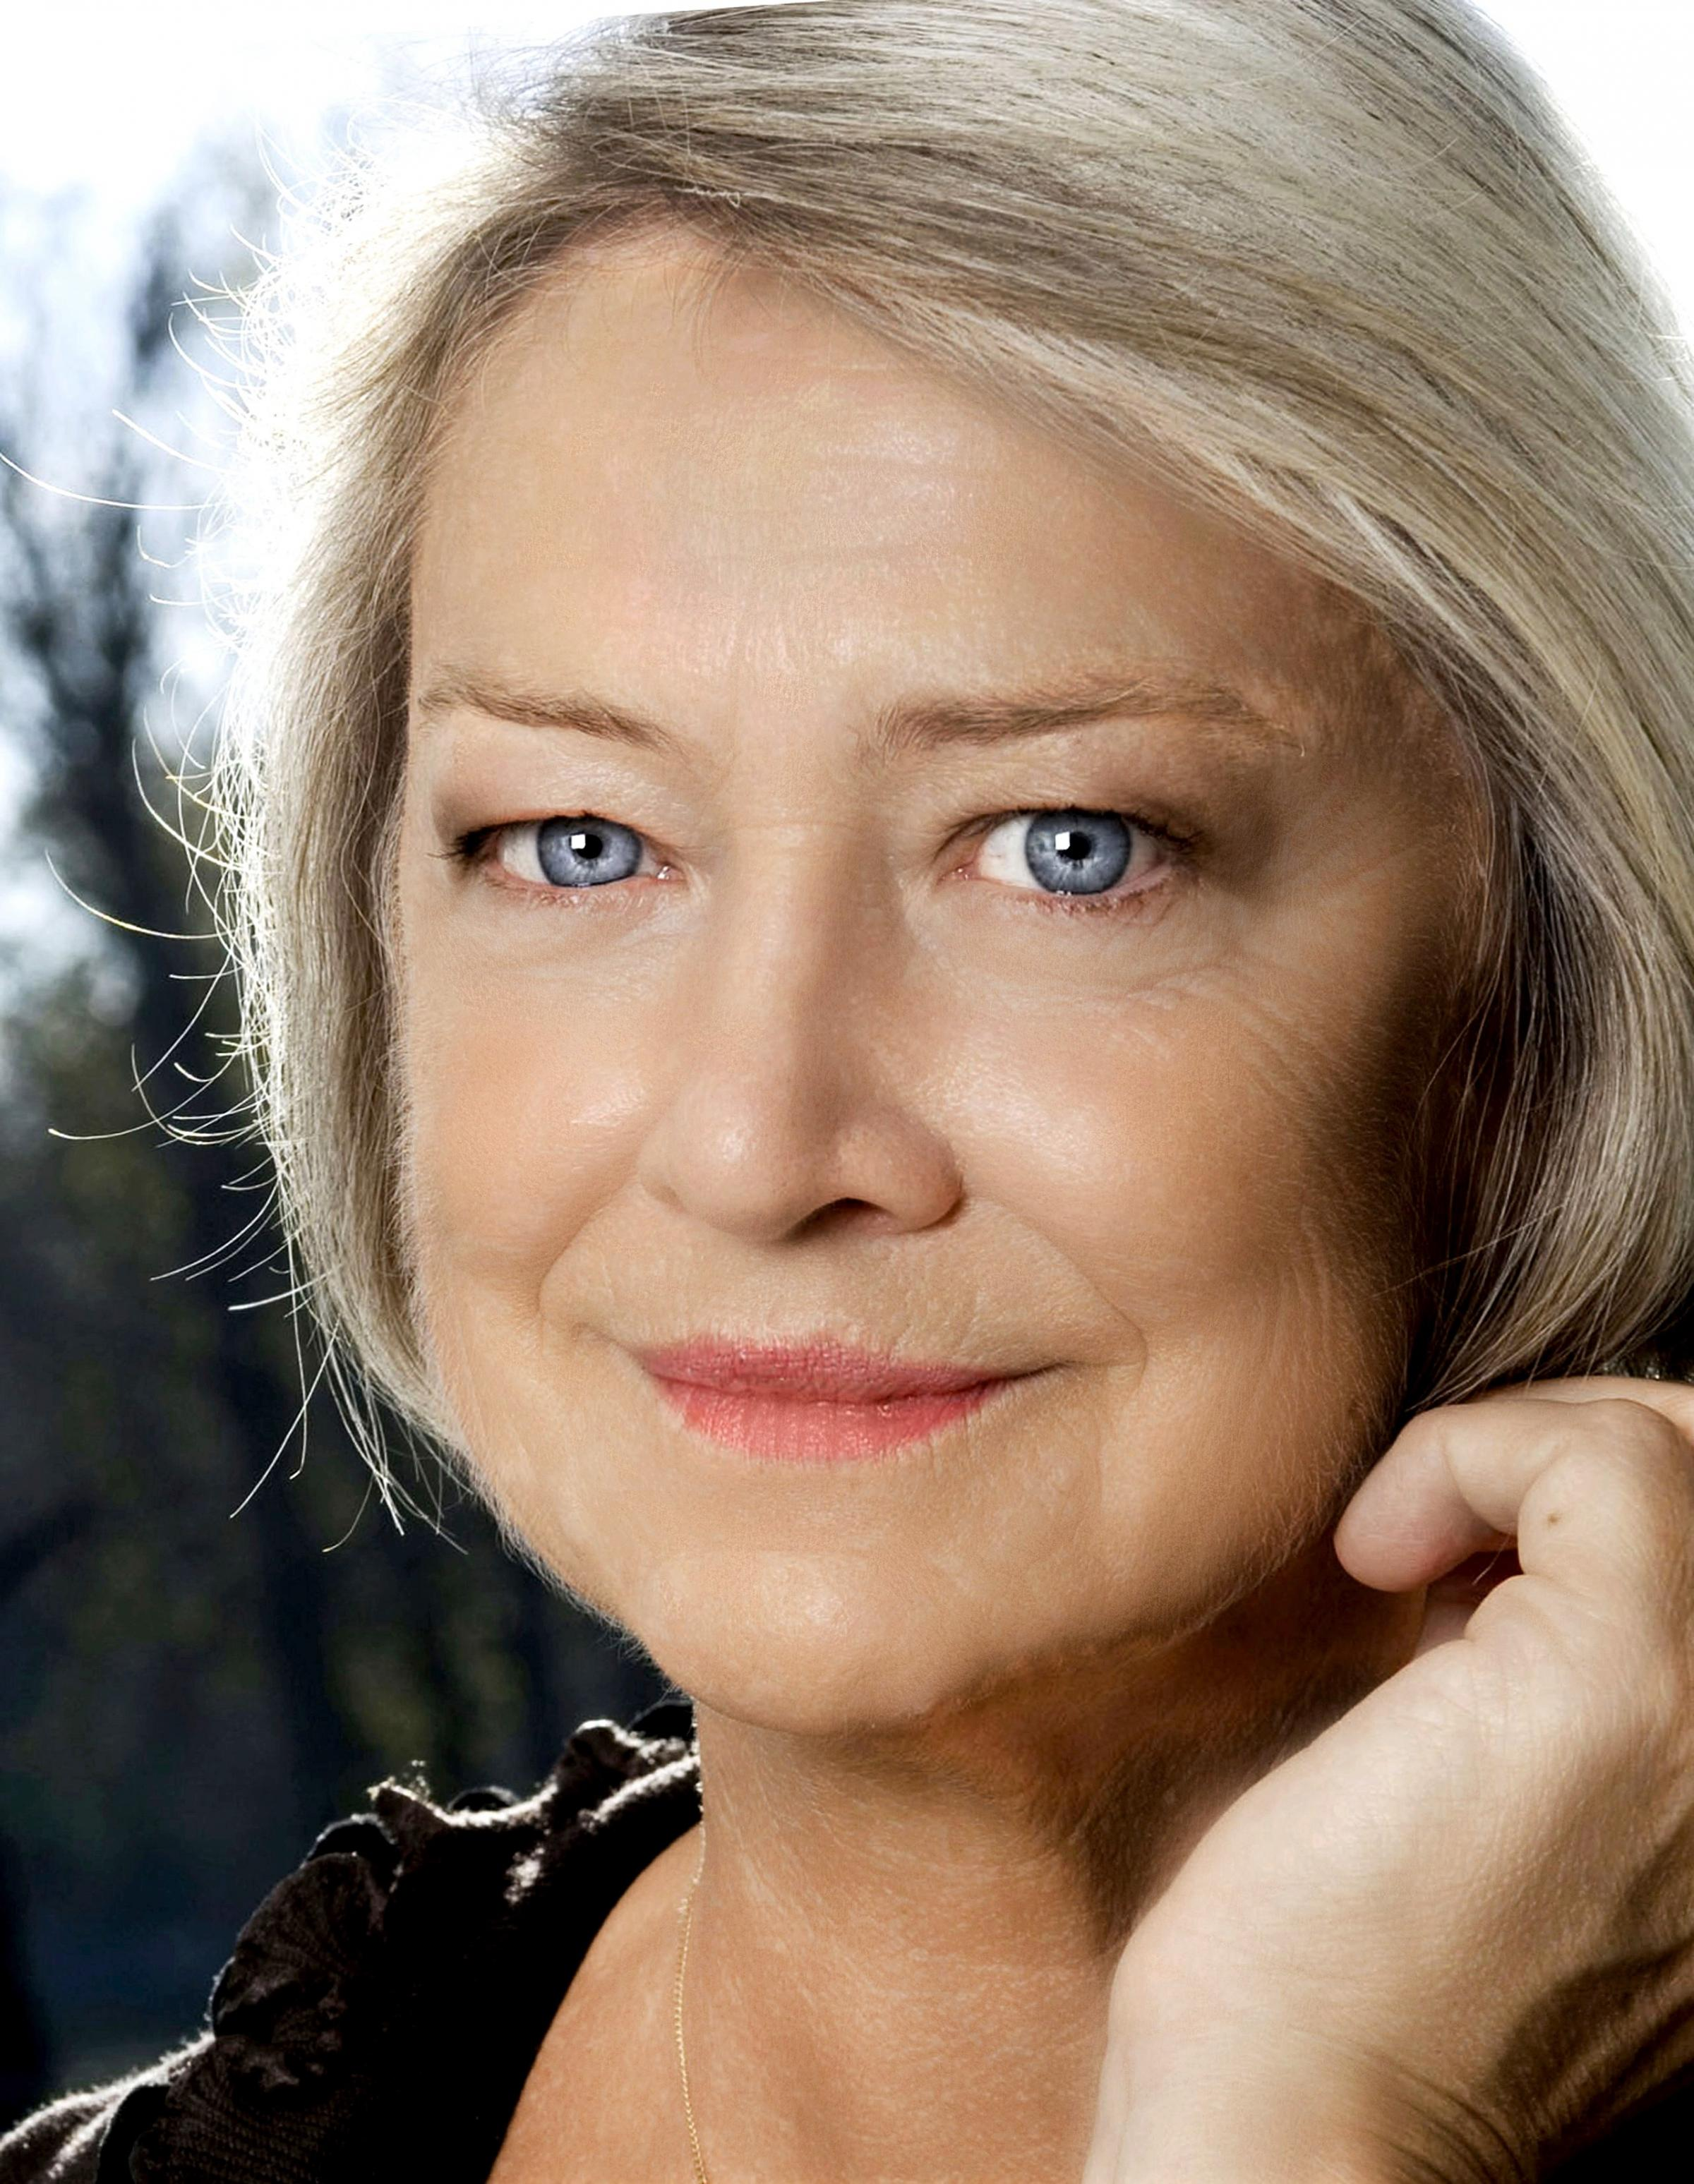 Kate Adie will be in conversation with Richard Osgood at the Larmer Tree Festival 2019